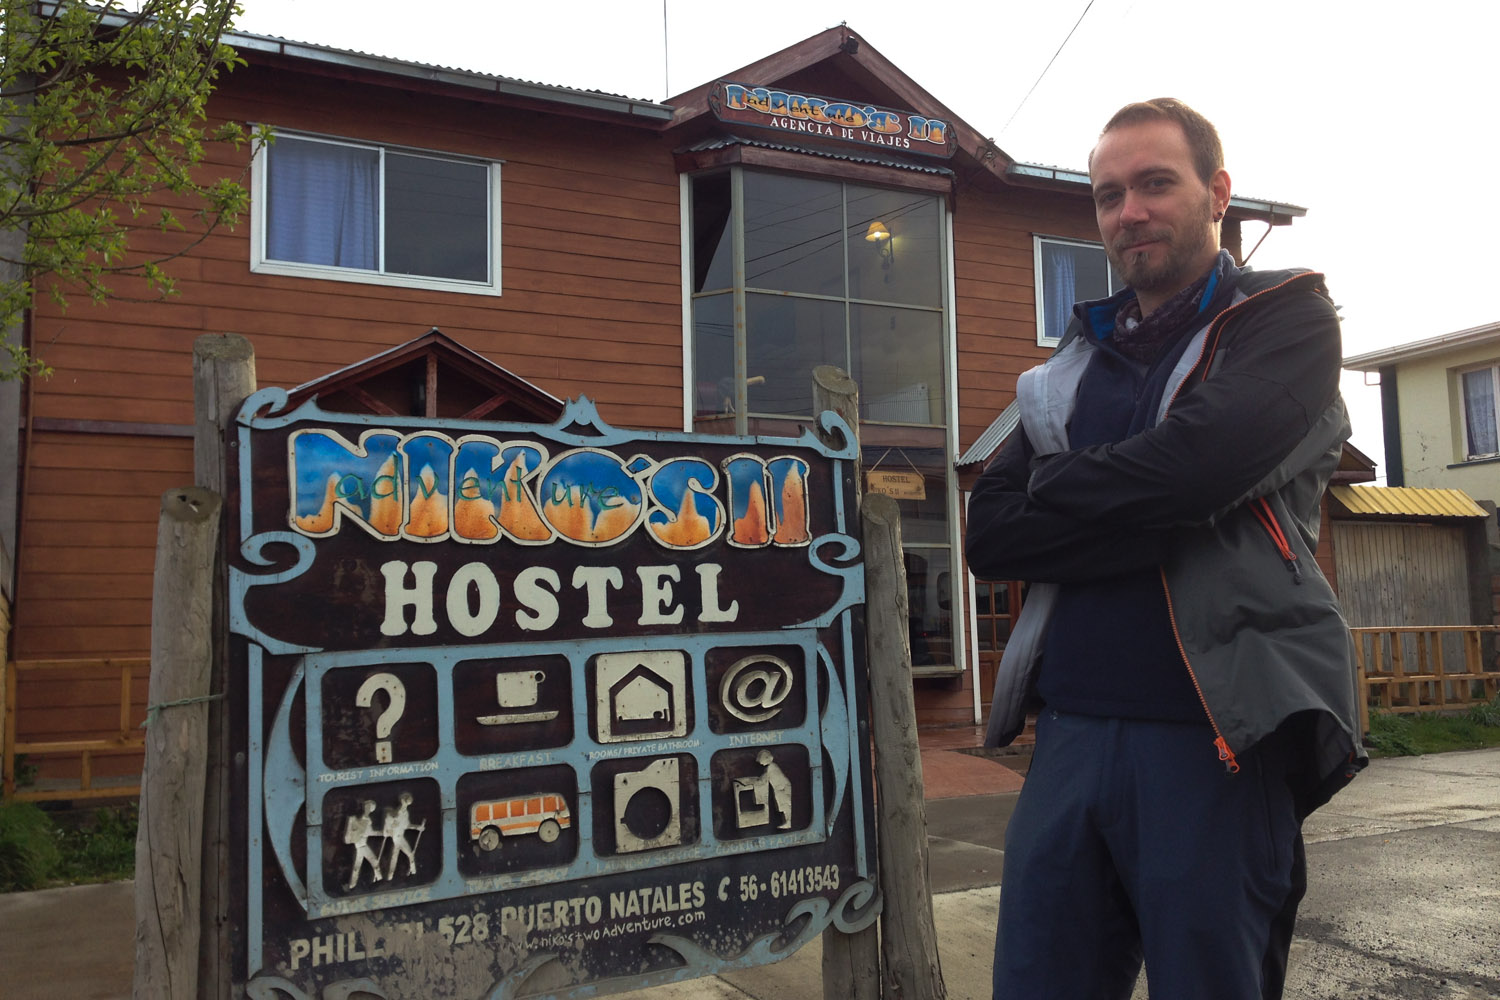 El hostal Niko's II Adventure